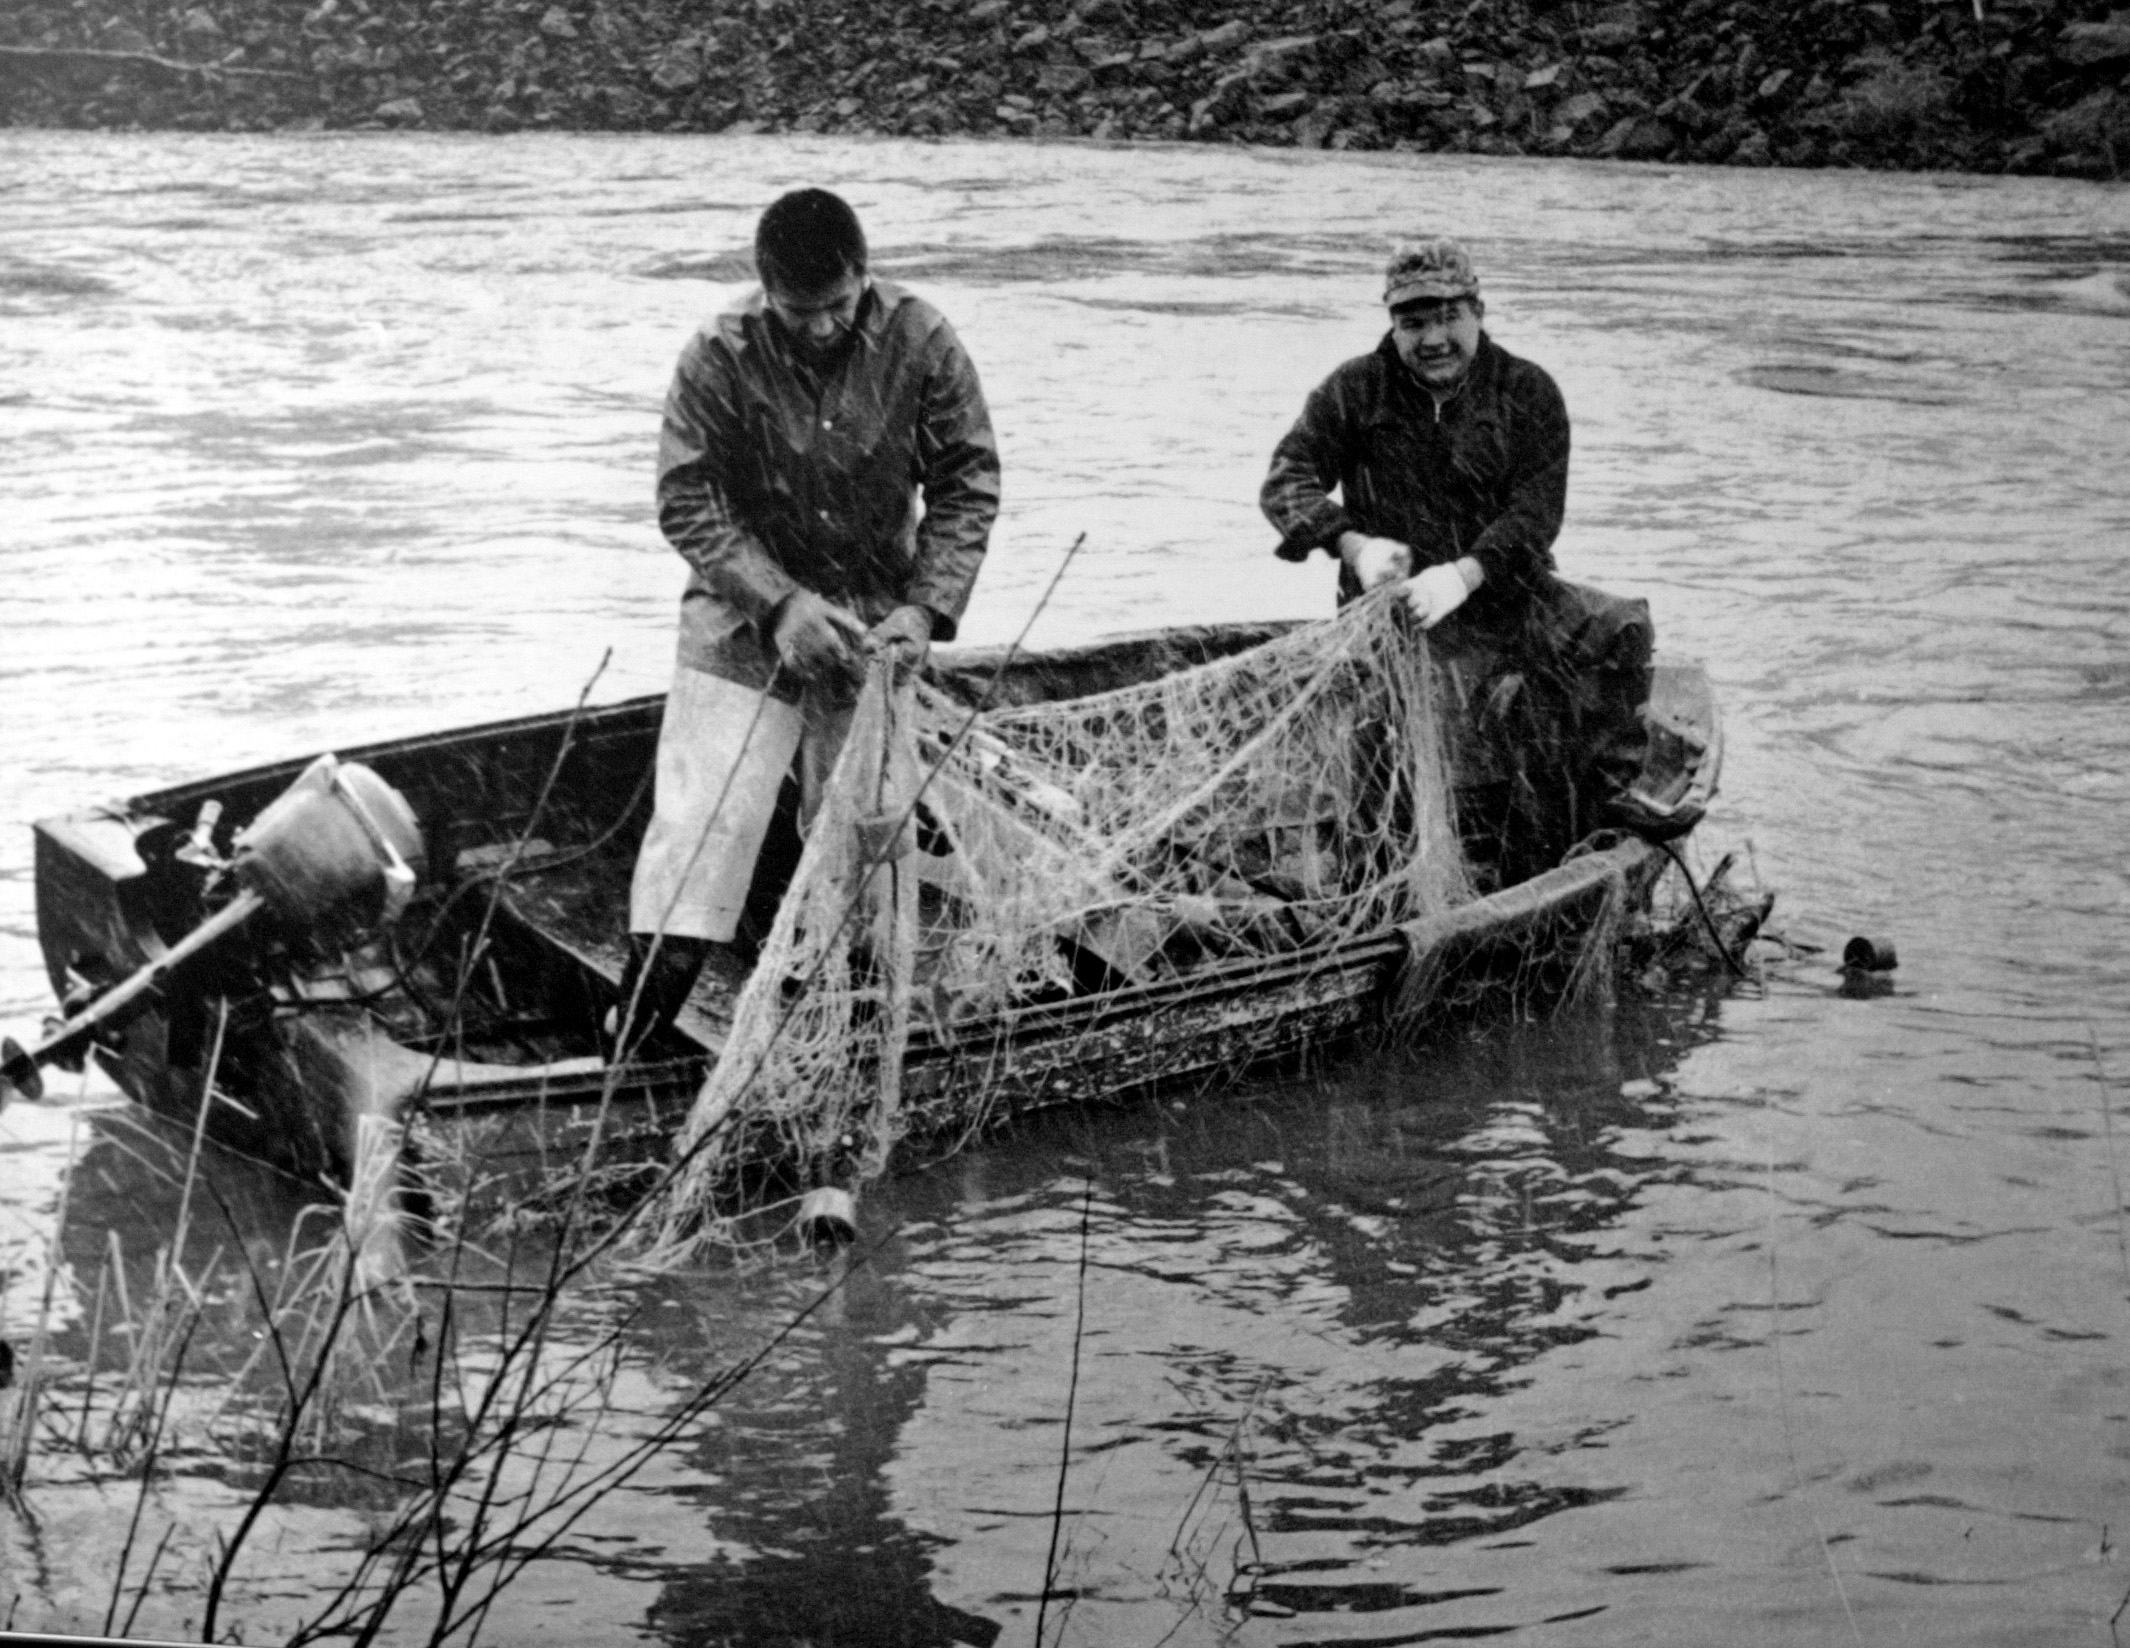 Billy Frank Jr. fishes on the NisquallyRiver near Olympia, Wash. with his half brother Don McCloud